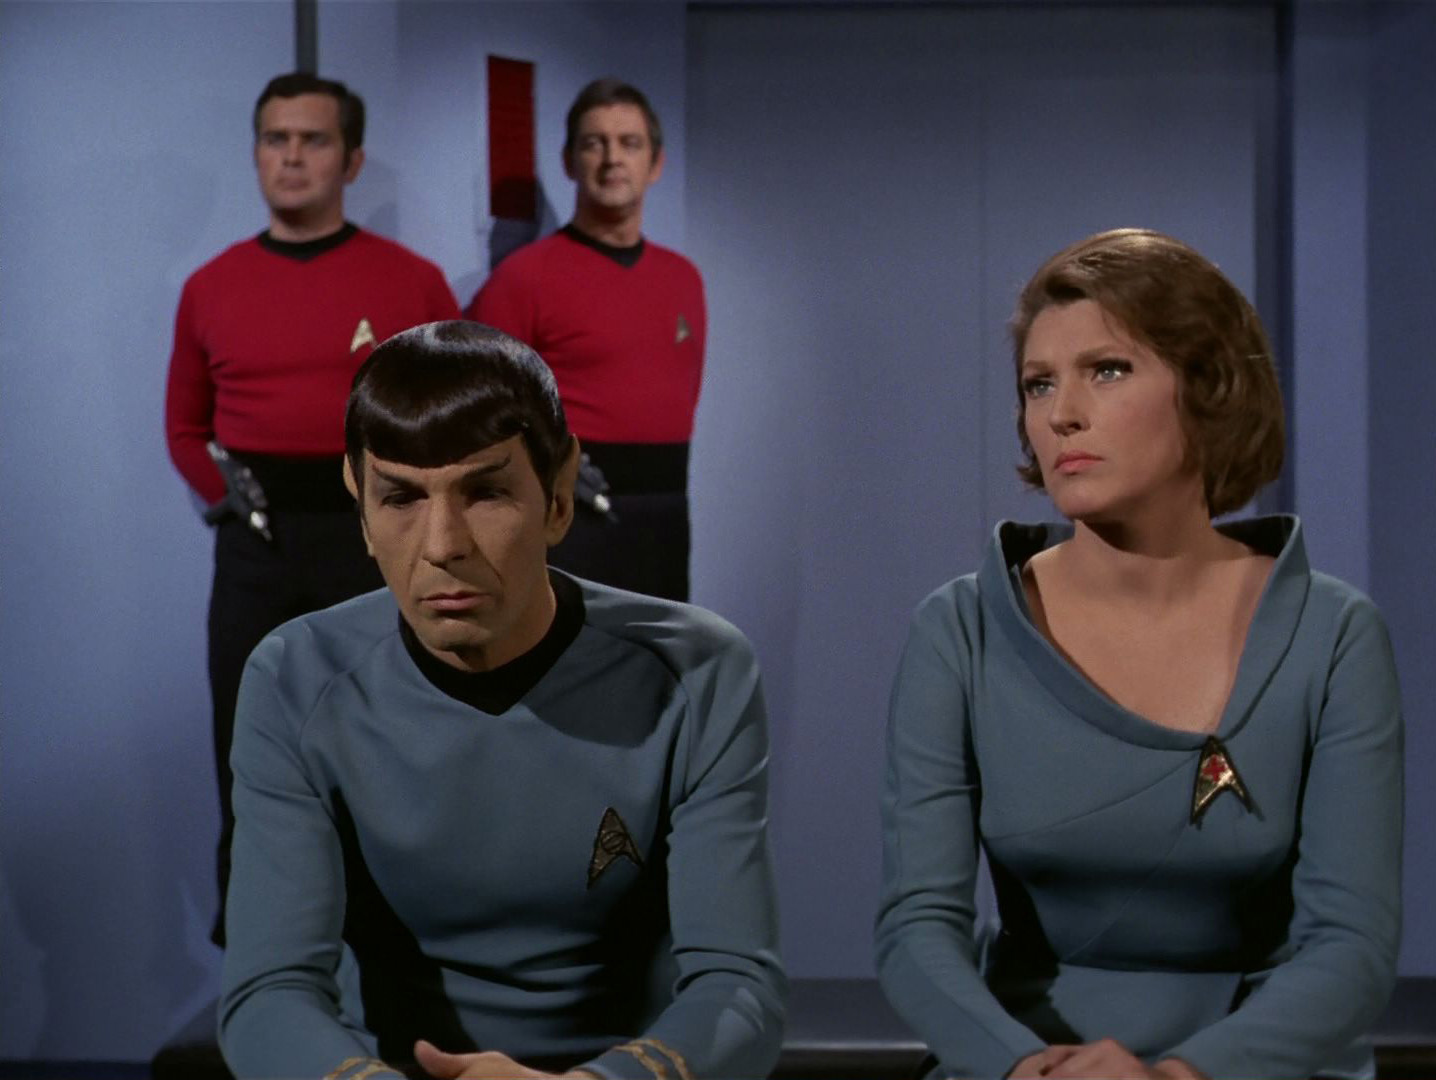 One more time! The last time we see Spock and Chapel together in 'Turnabout Intruder'